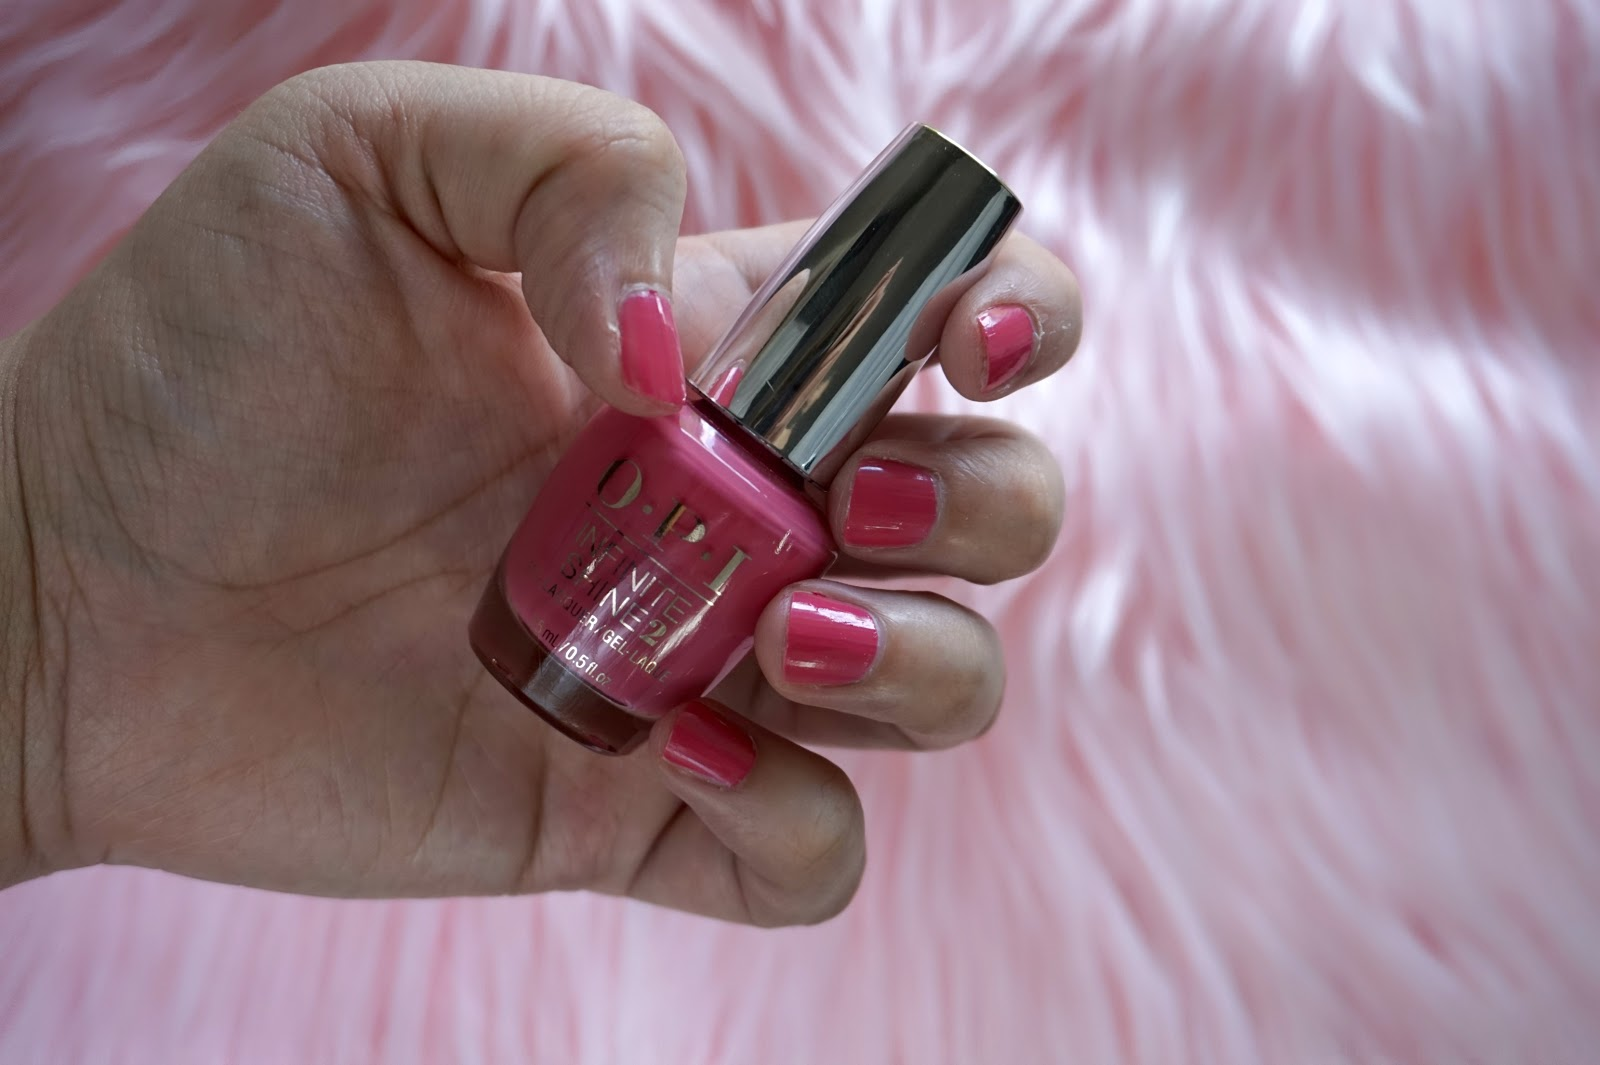 OPI Nail Polish in Defy Explanation | Best Nail Polishes To Wear All Year // Beauty With Lily, A West Texas Beauty, Fashion & Lifestyle Blog